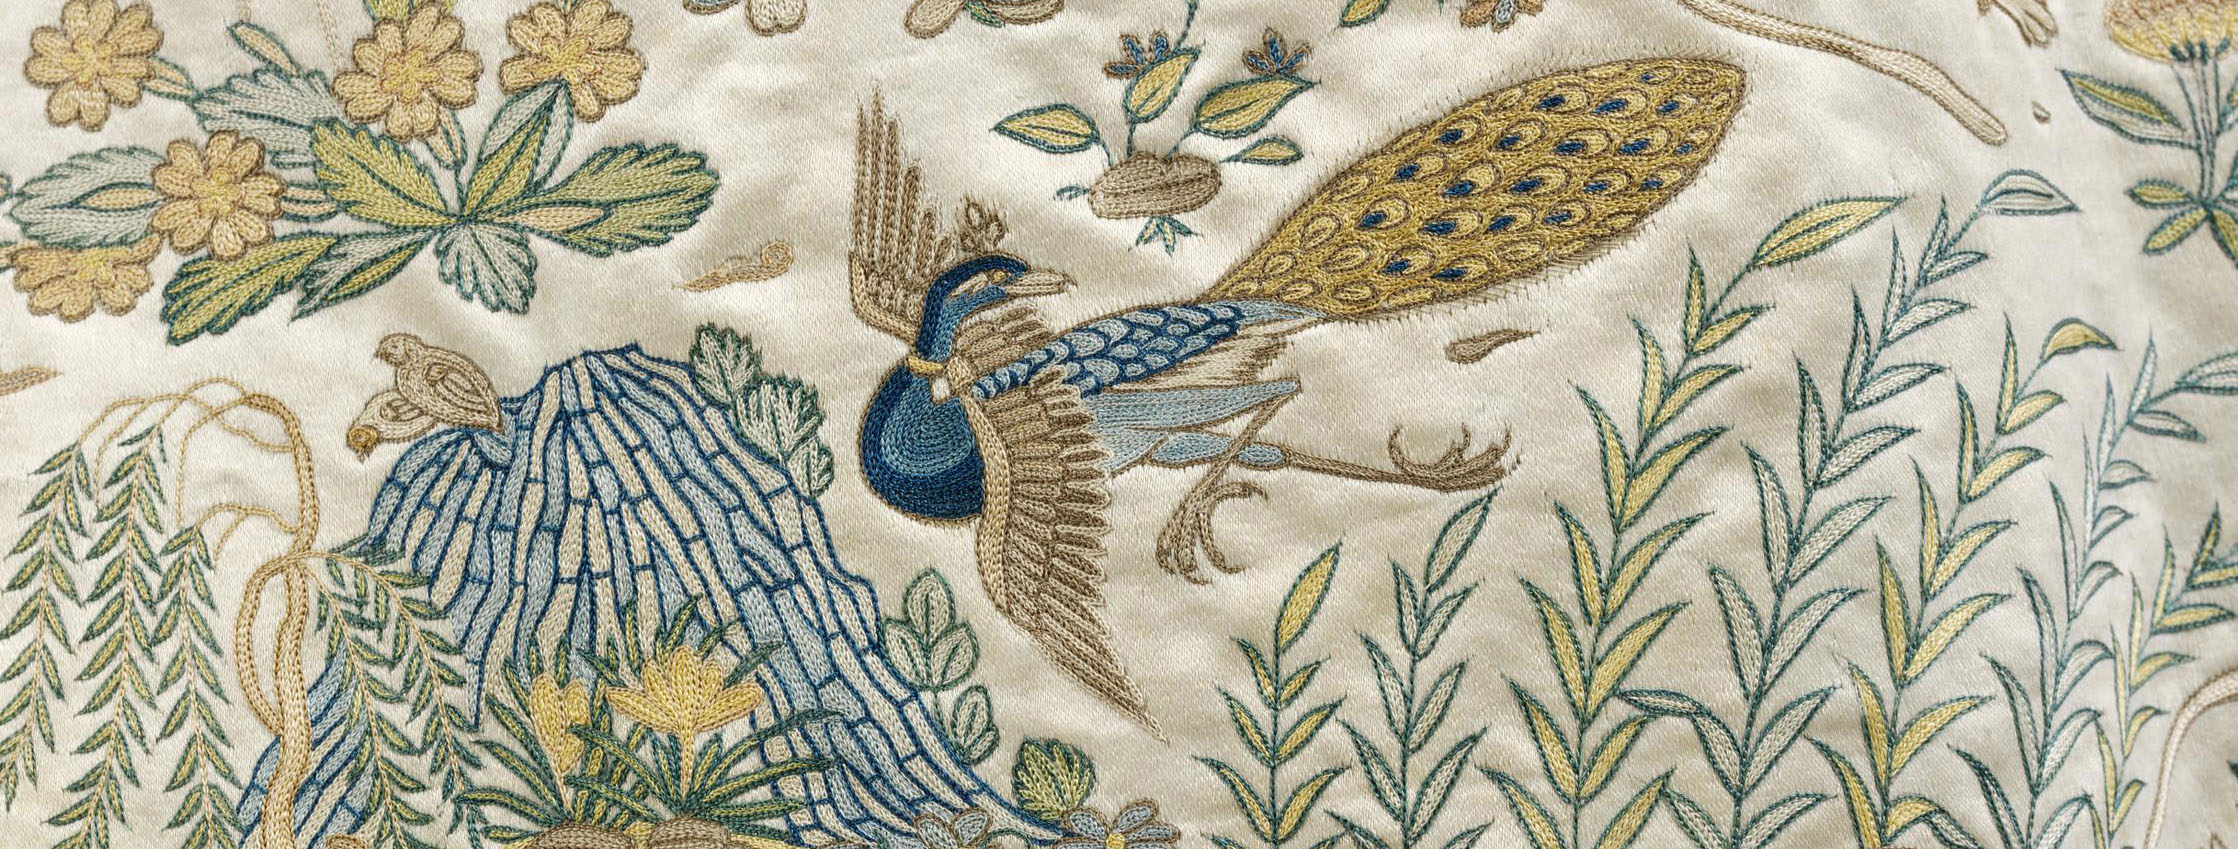 The Emperor's Humbler Clothes: Textures Of Courtly Dress In With 2018 Blended Fabric European Five English Horses Tapestries (View 18 of 20)